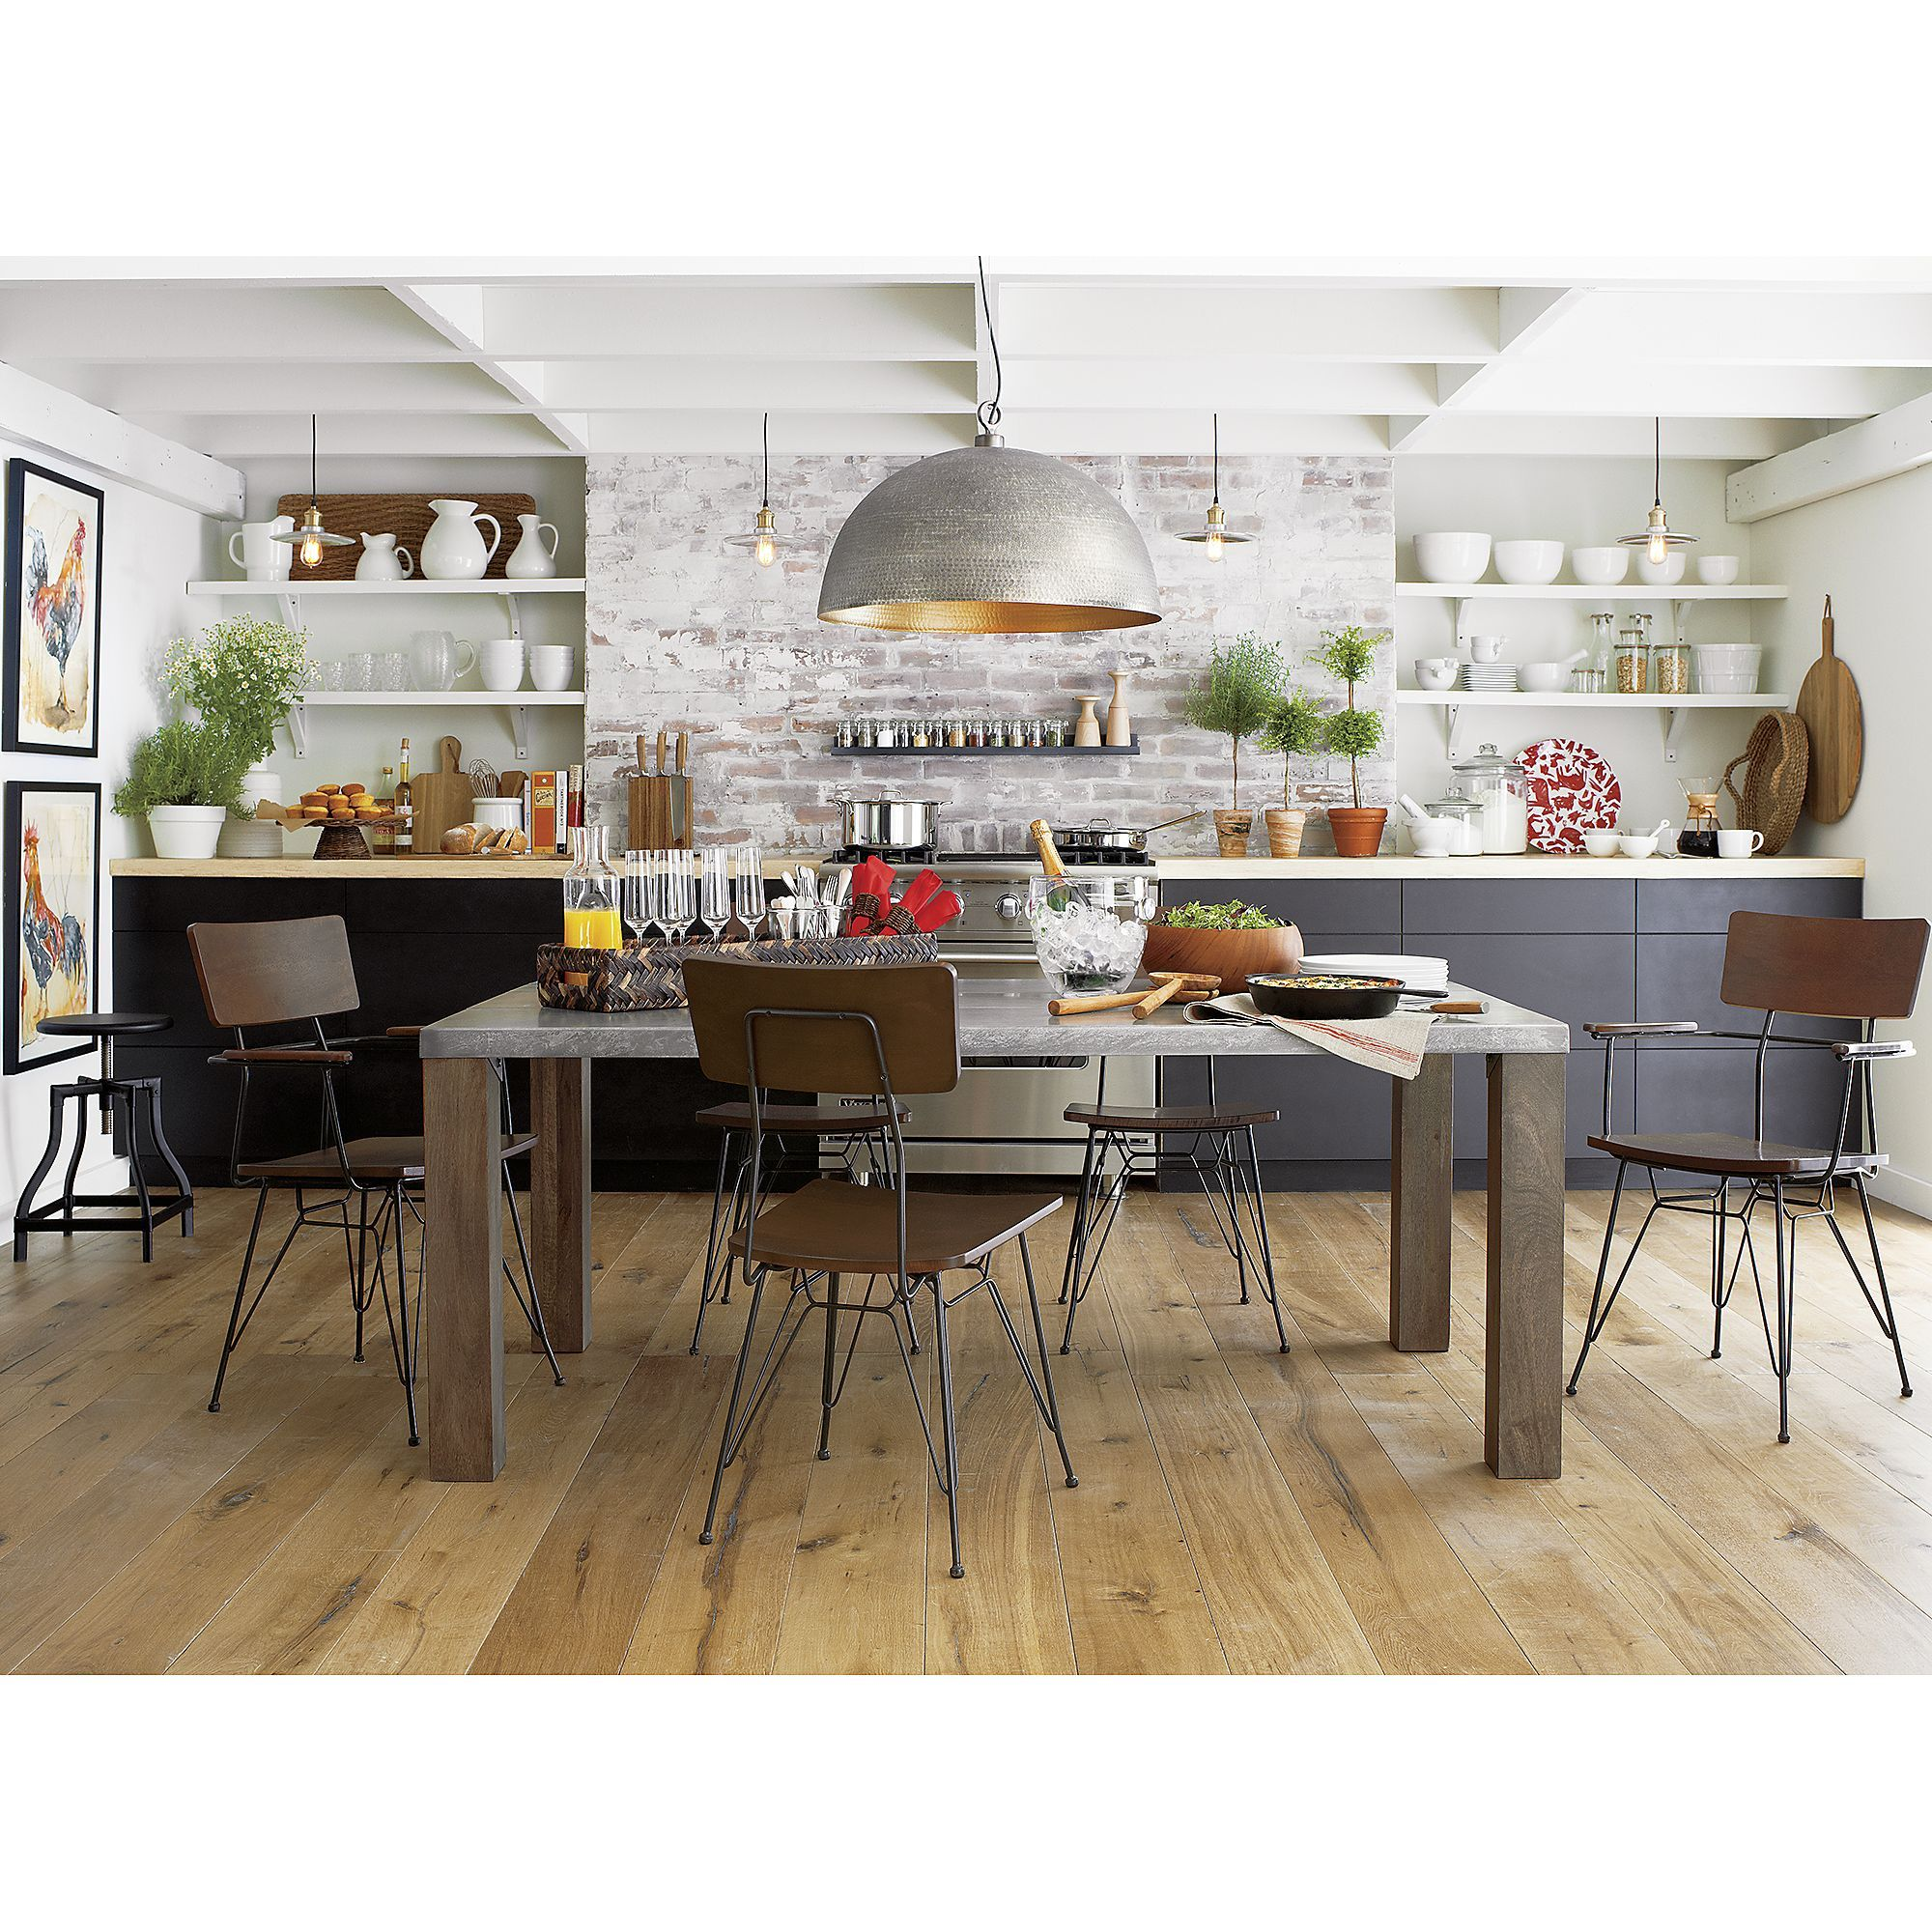 Crate and barrel dining room table - Rodan Pendant Light Crate And Barrel